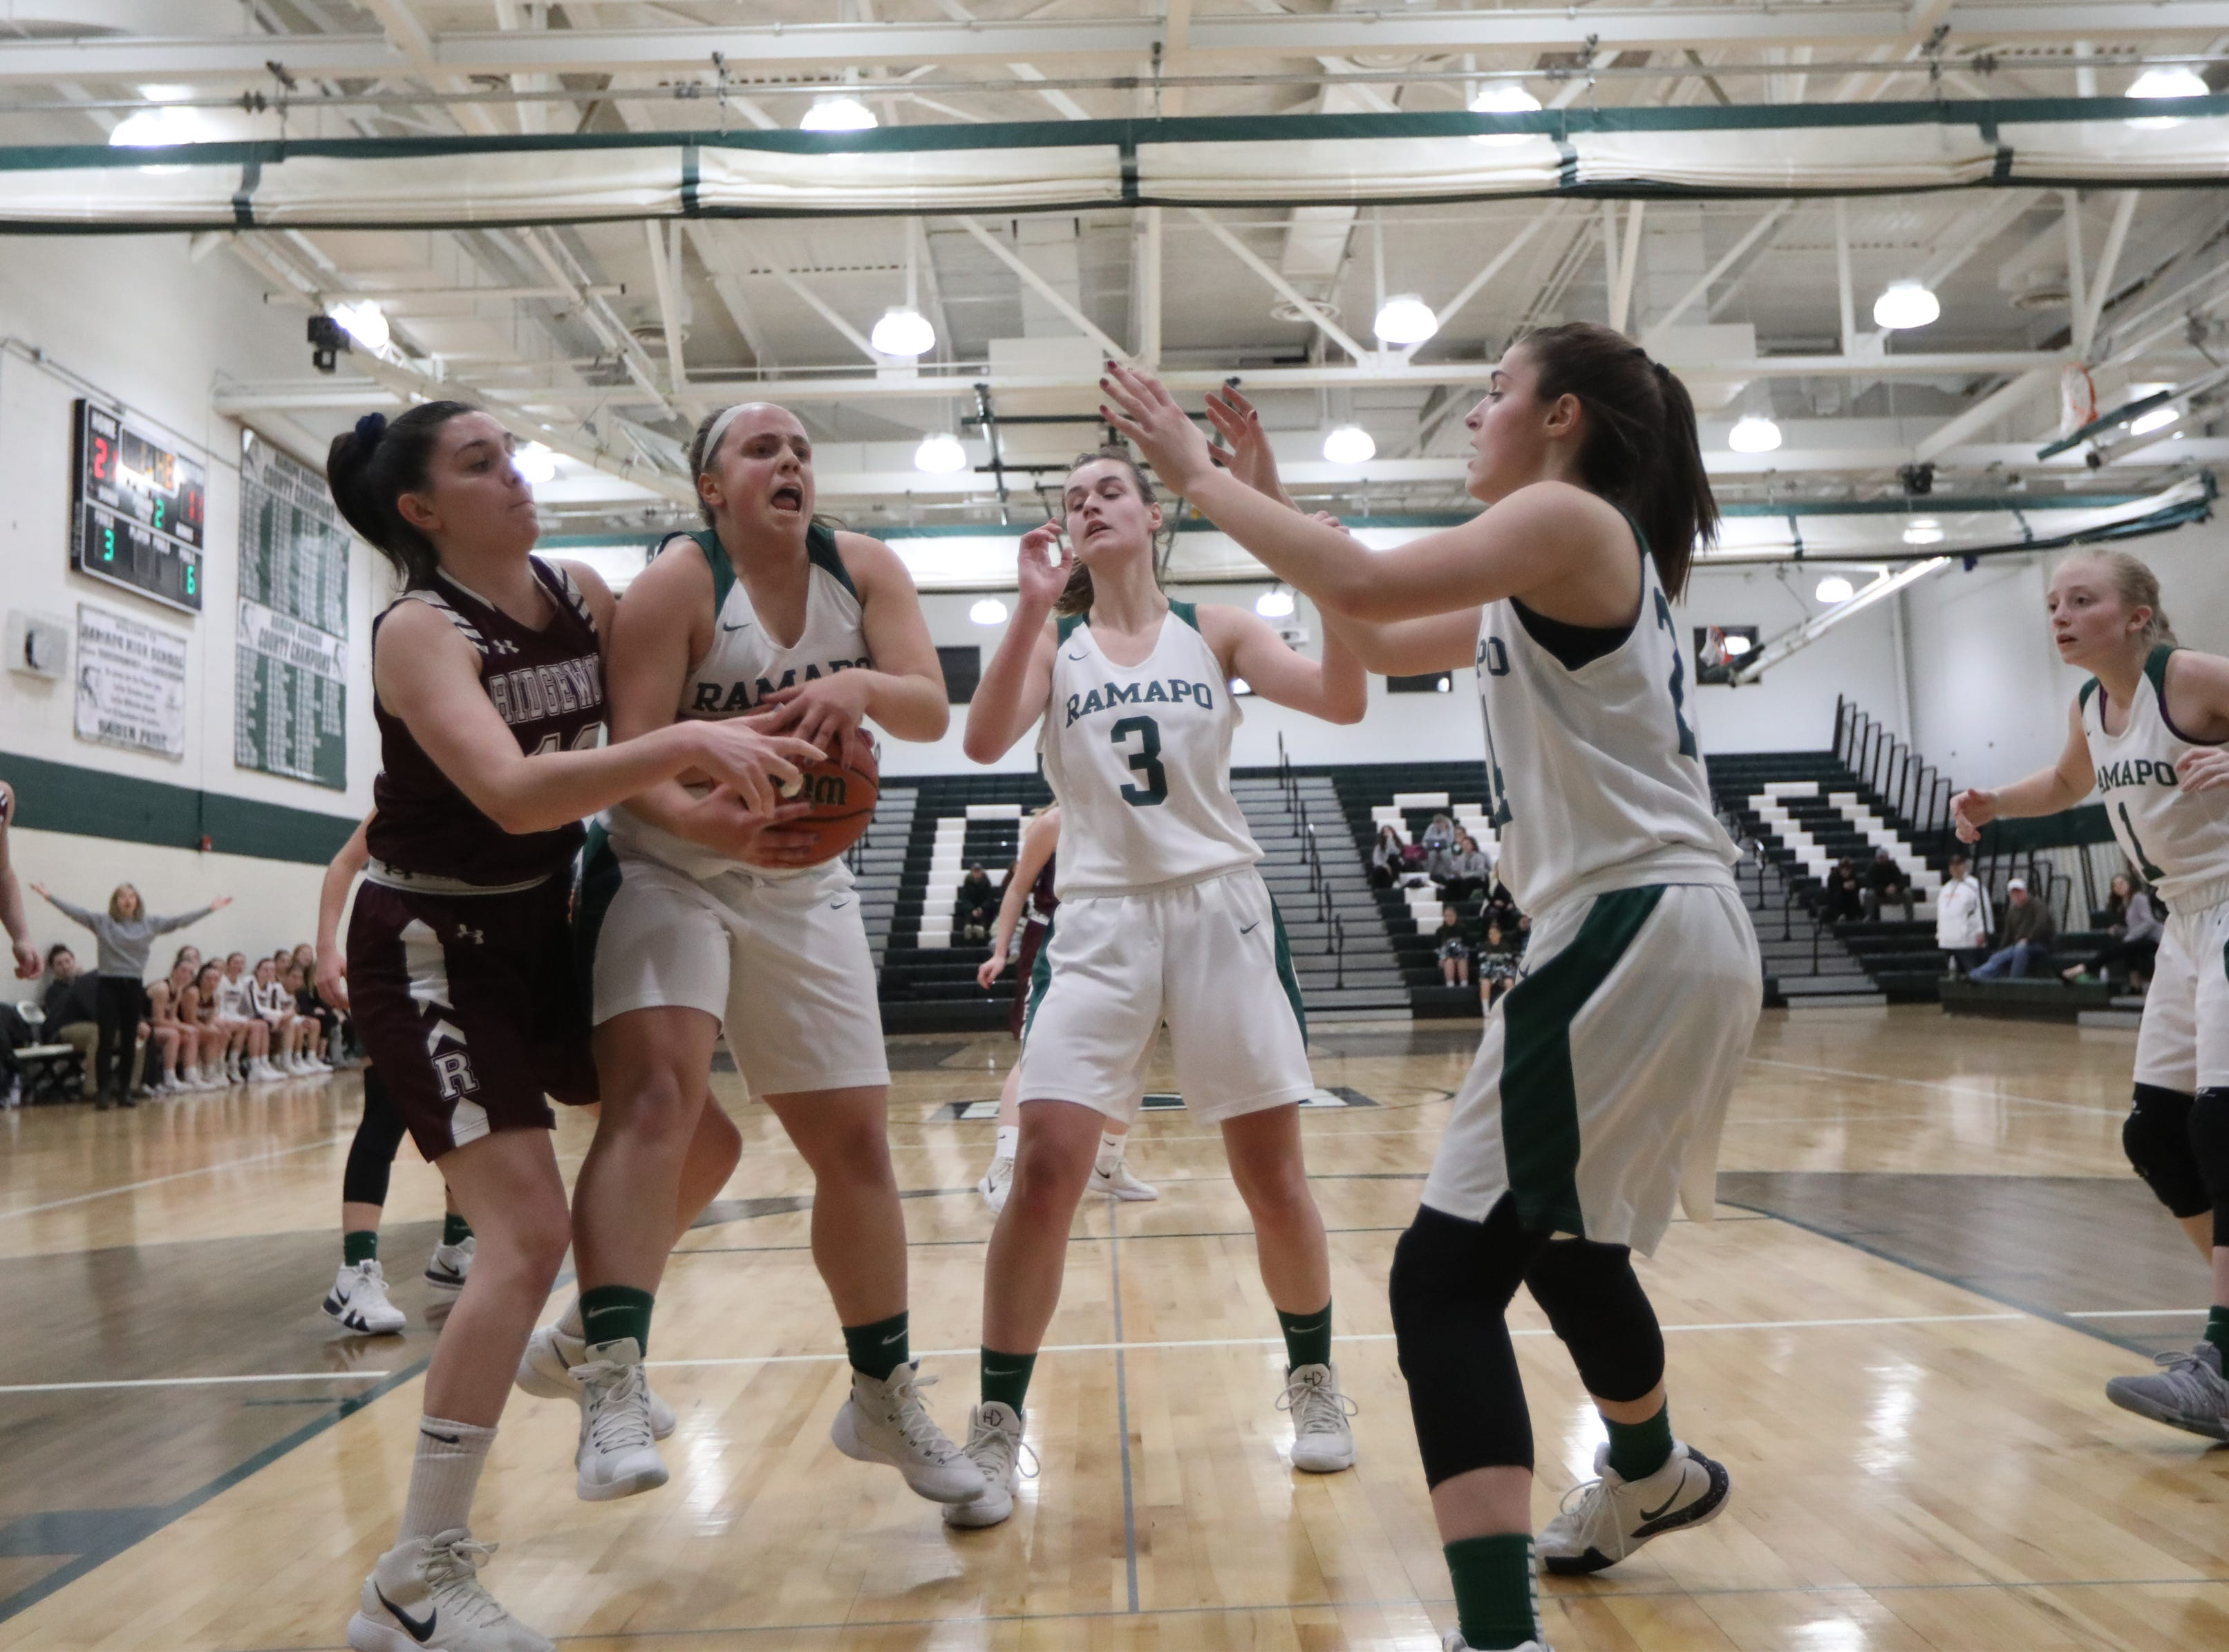 Hagan Gorman, of Ridgewood, and Jenny Amato, of Ramapo, battle for the ball in the first half. Thursday, January 10, 2019